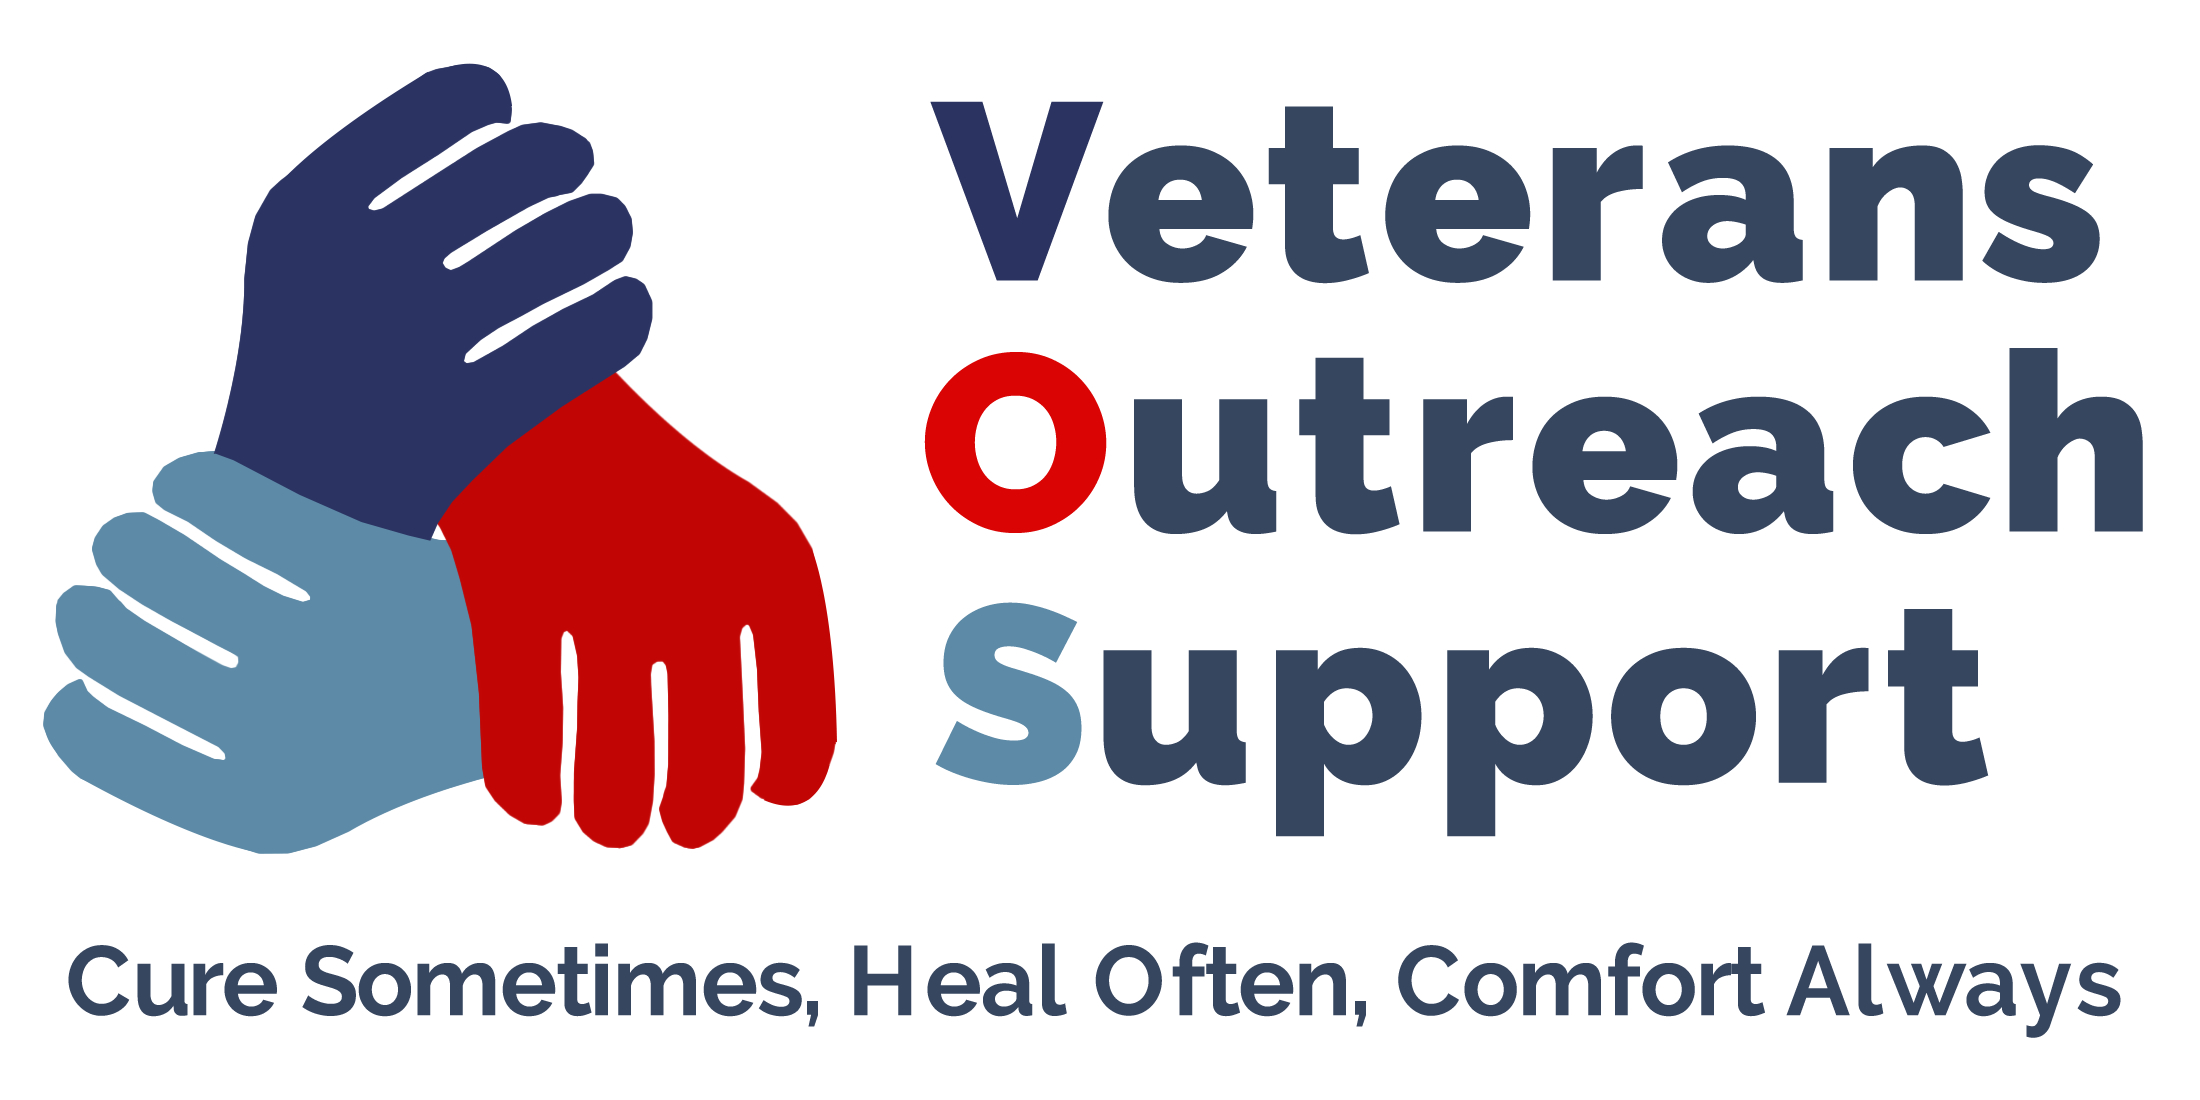 Veterans Outreach Support